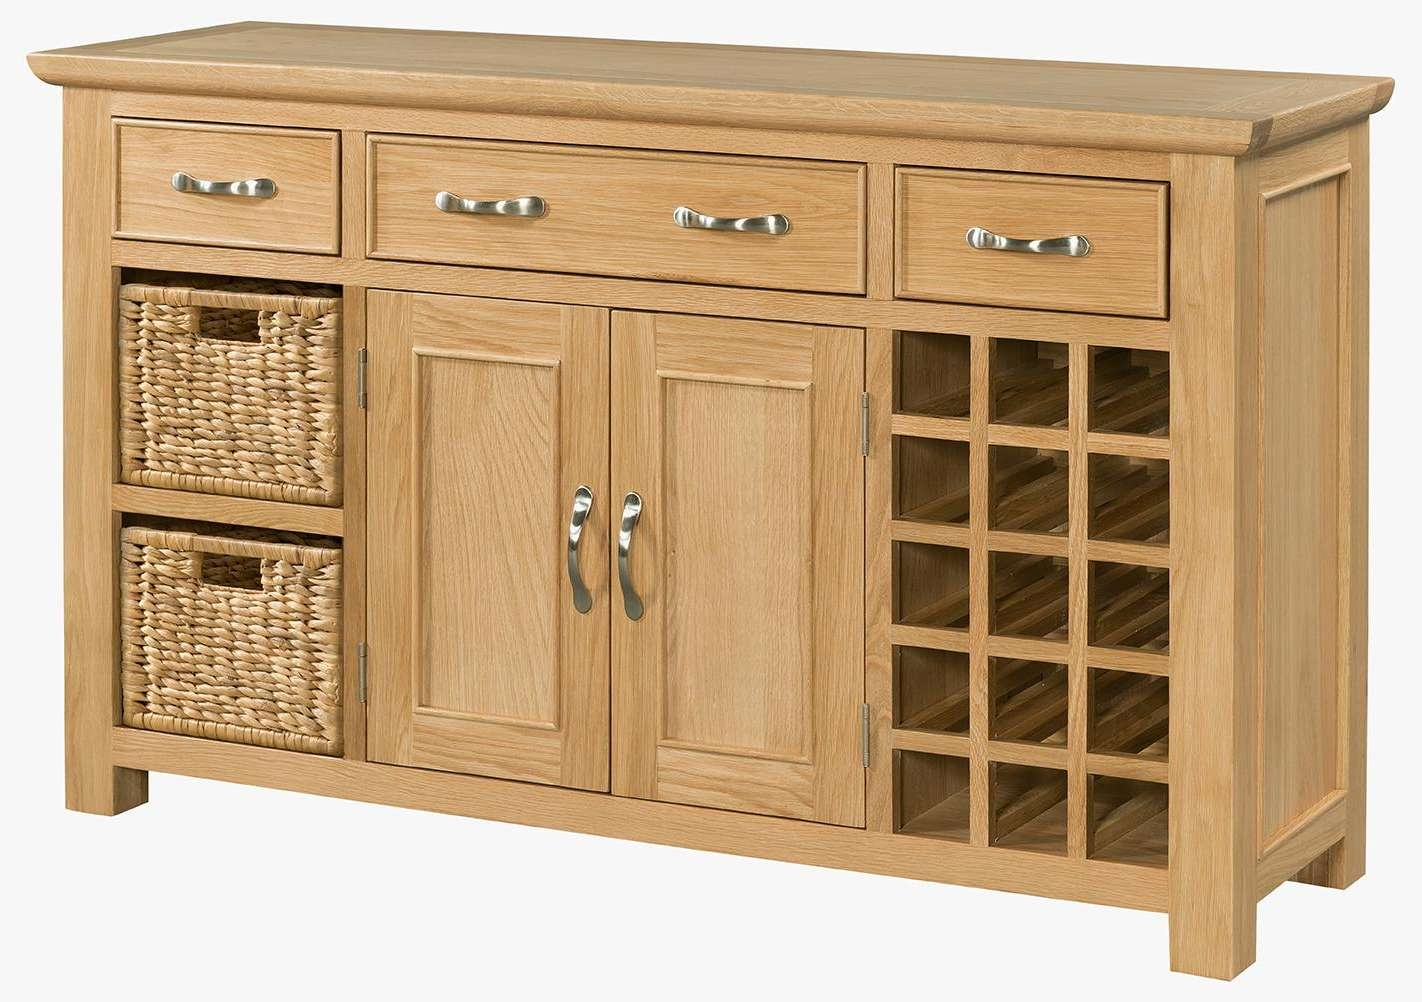 Oak Large Sideboard With Wine Rack (Sie054) – Solid Wood & Painted Intended For Wine Sideboards (View 7 of 20)